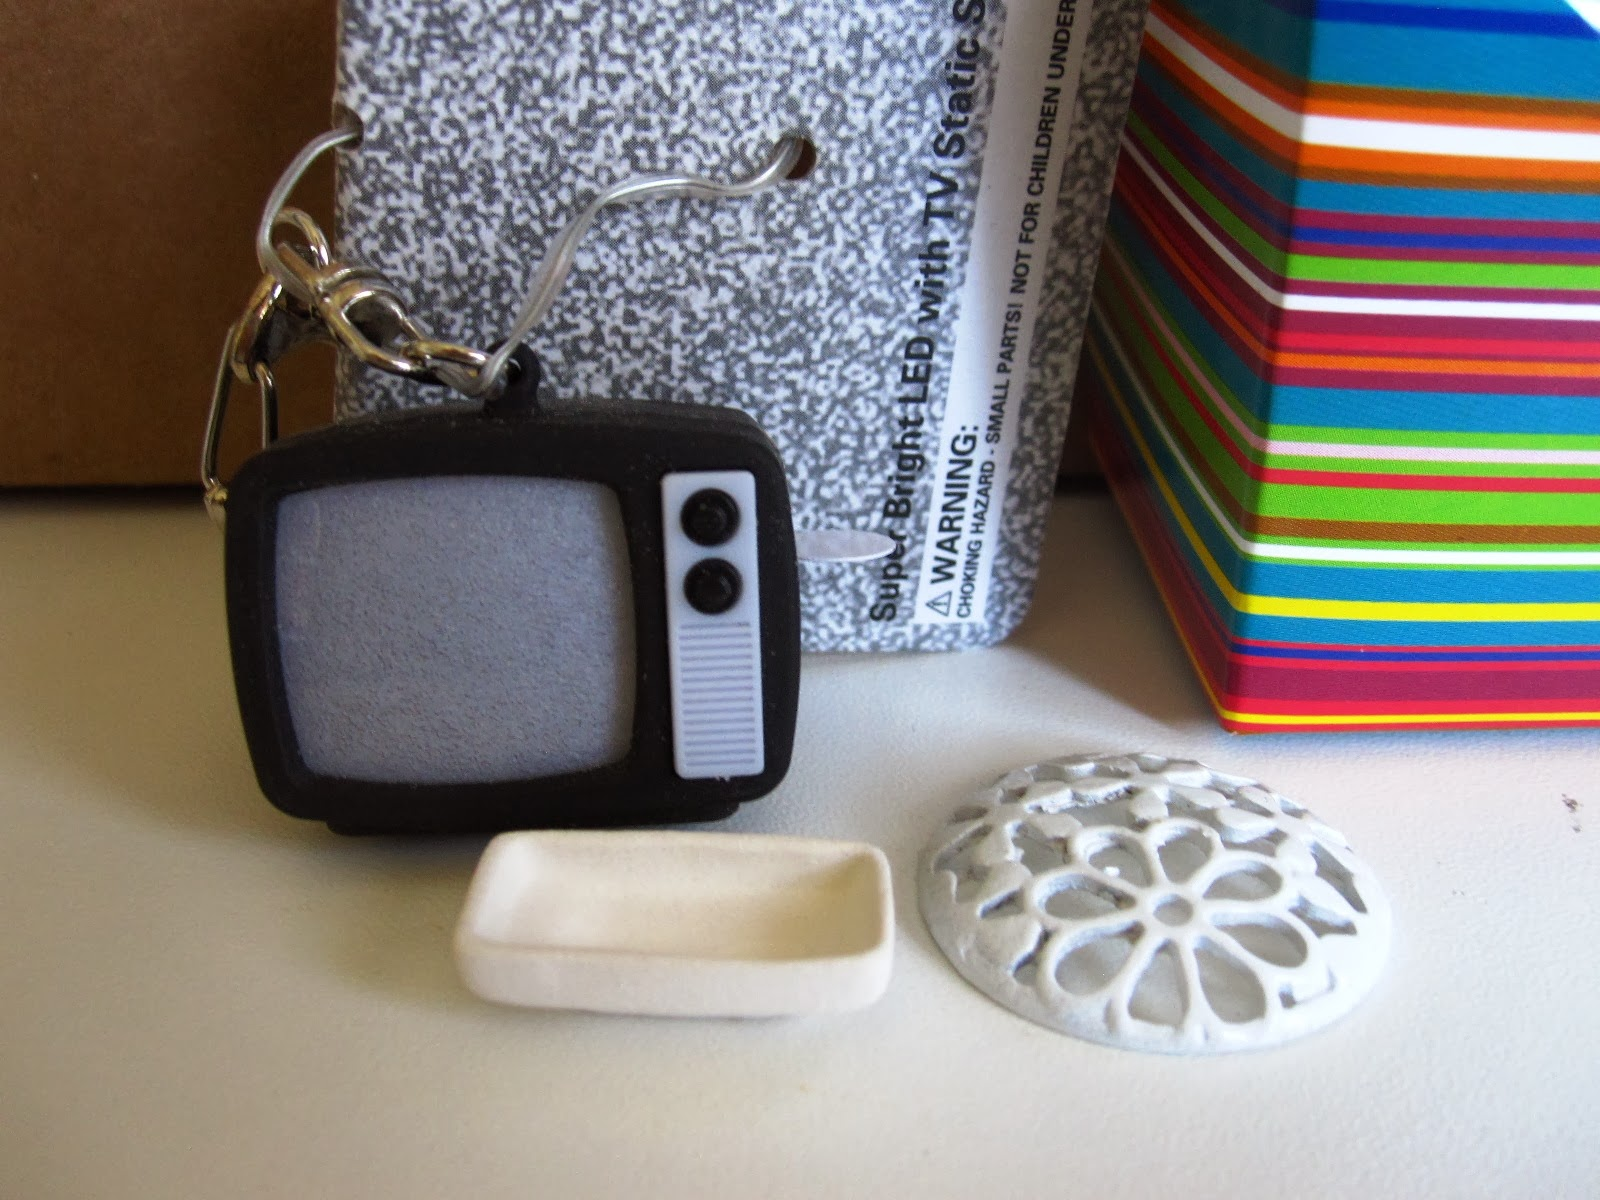 Miniature retro TV, daisy finding and plate